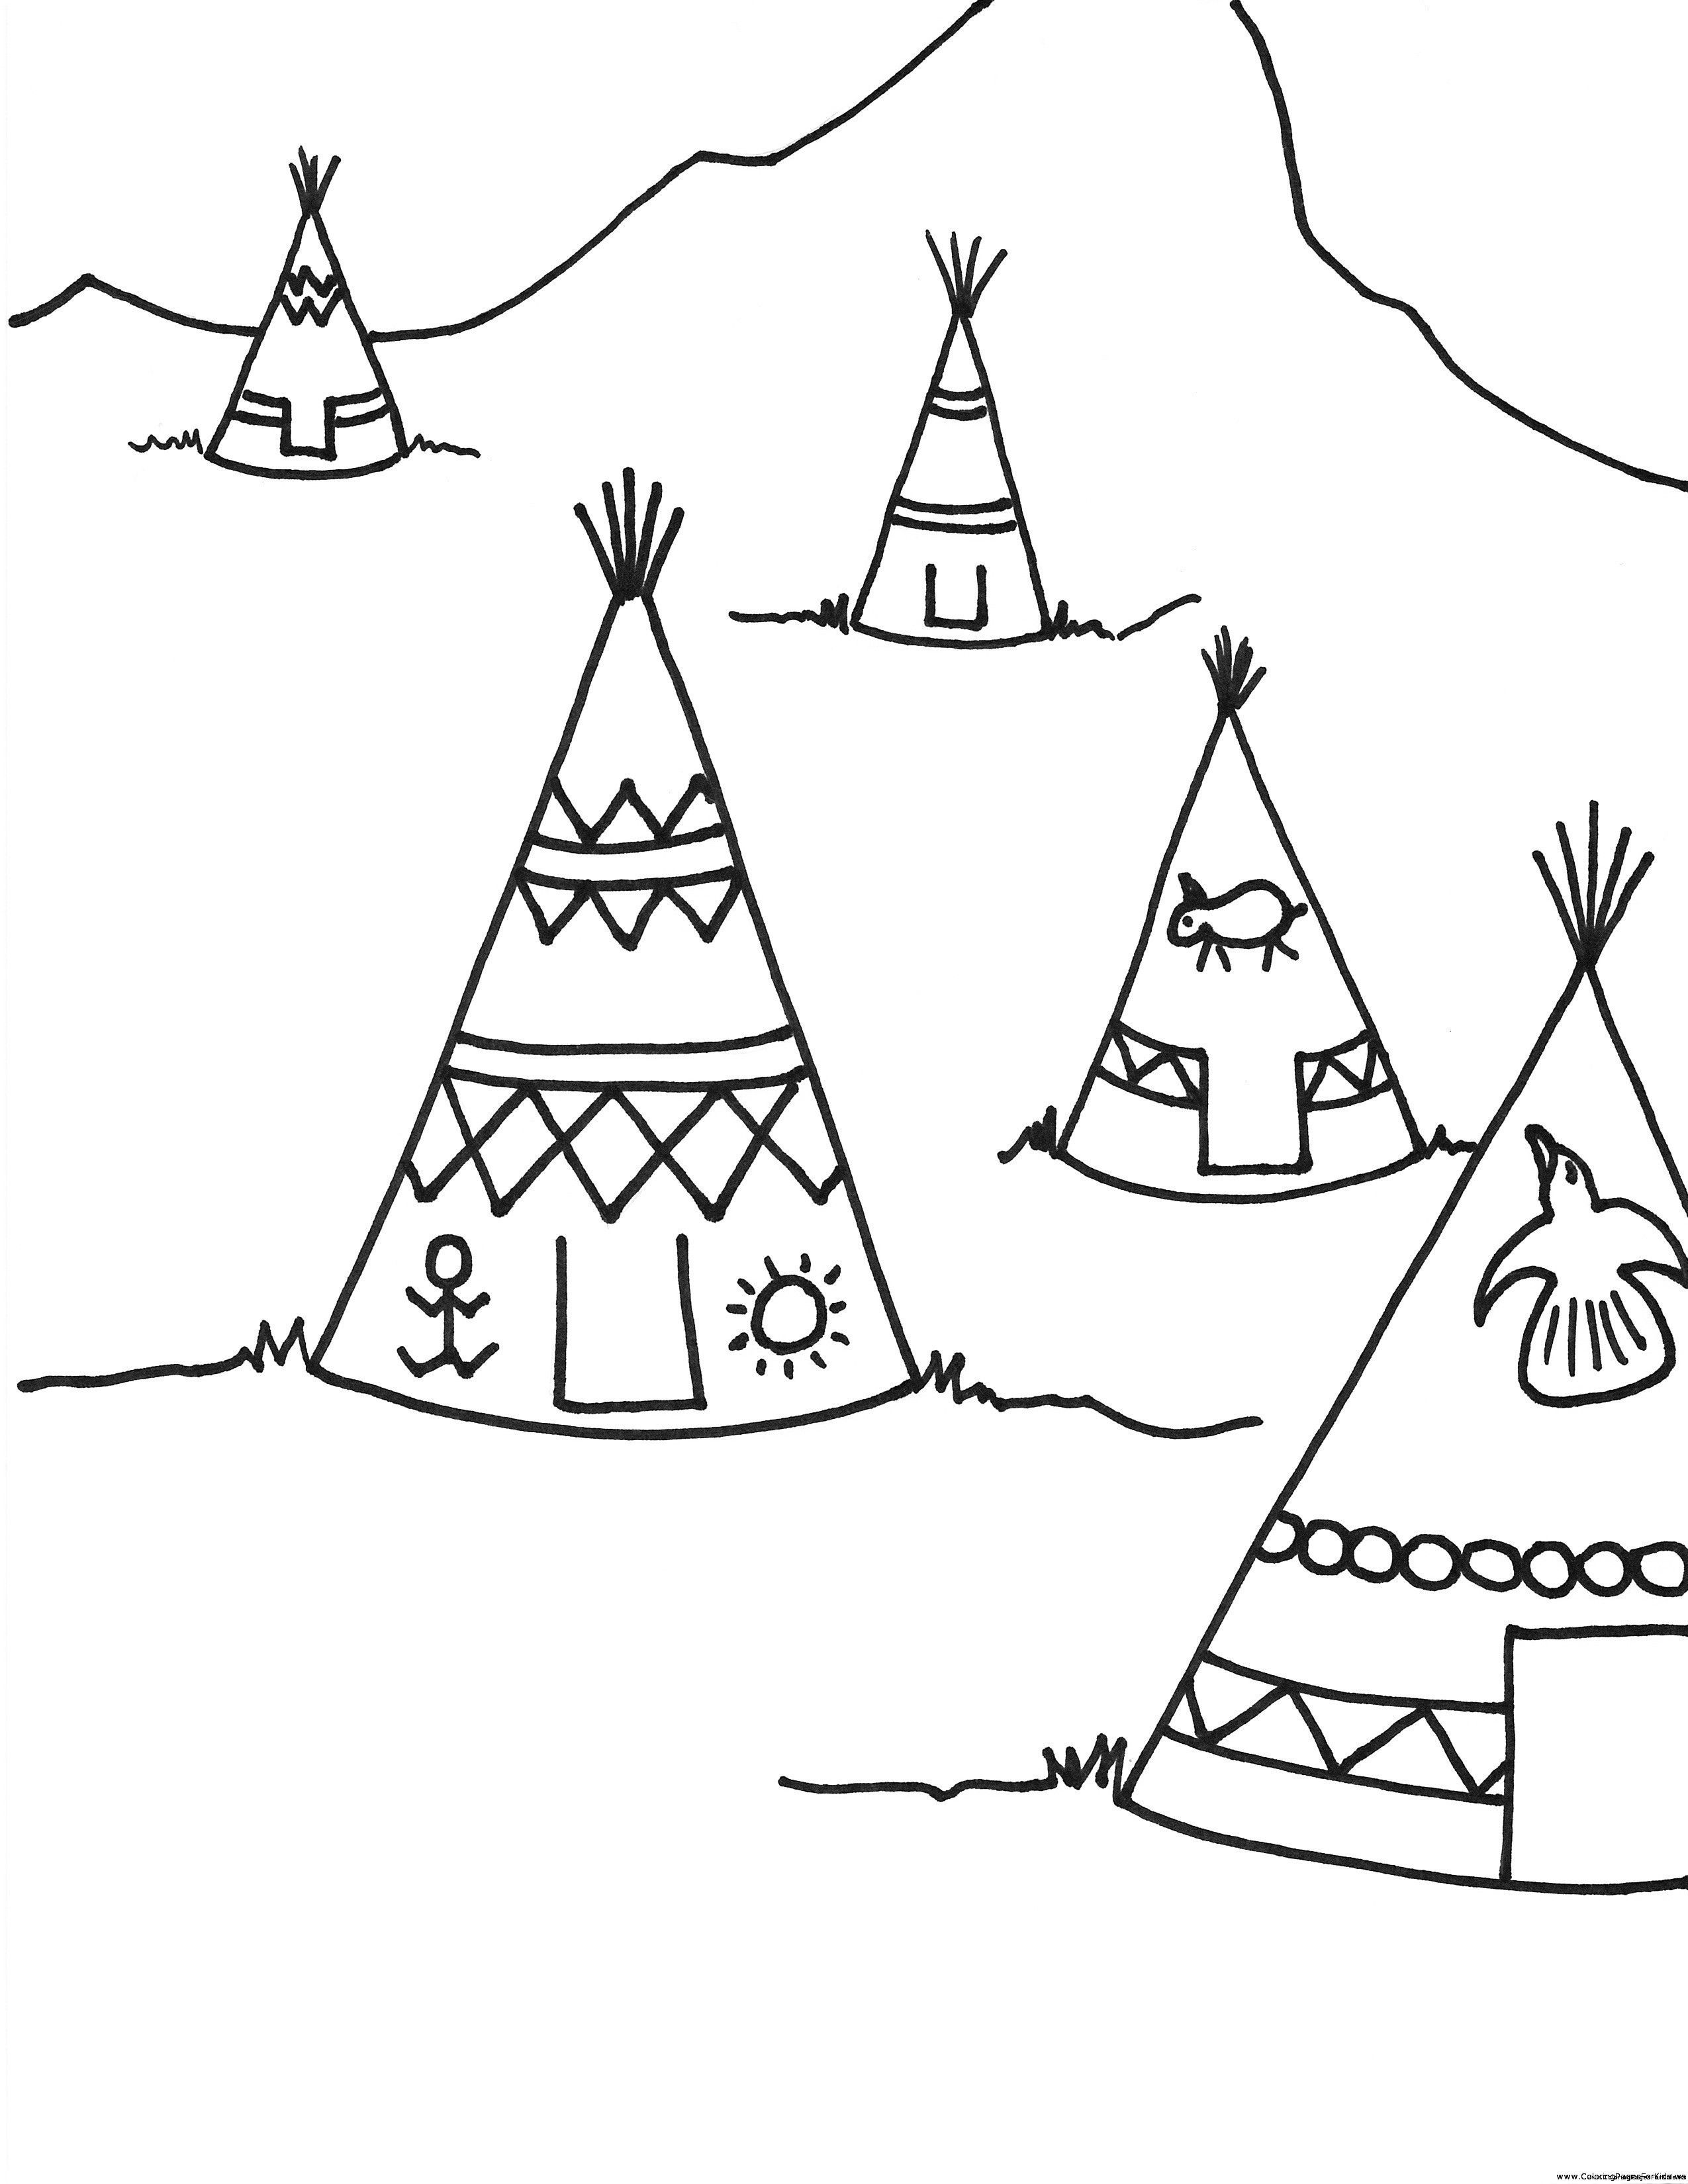 Printable Teepee Coloring Page For Kids Thanksgiving Coloring Pages Coloring Pages Coloring Pages For Kids